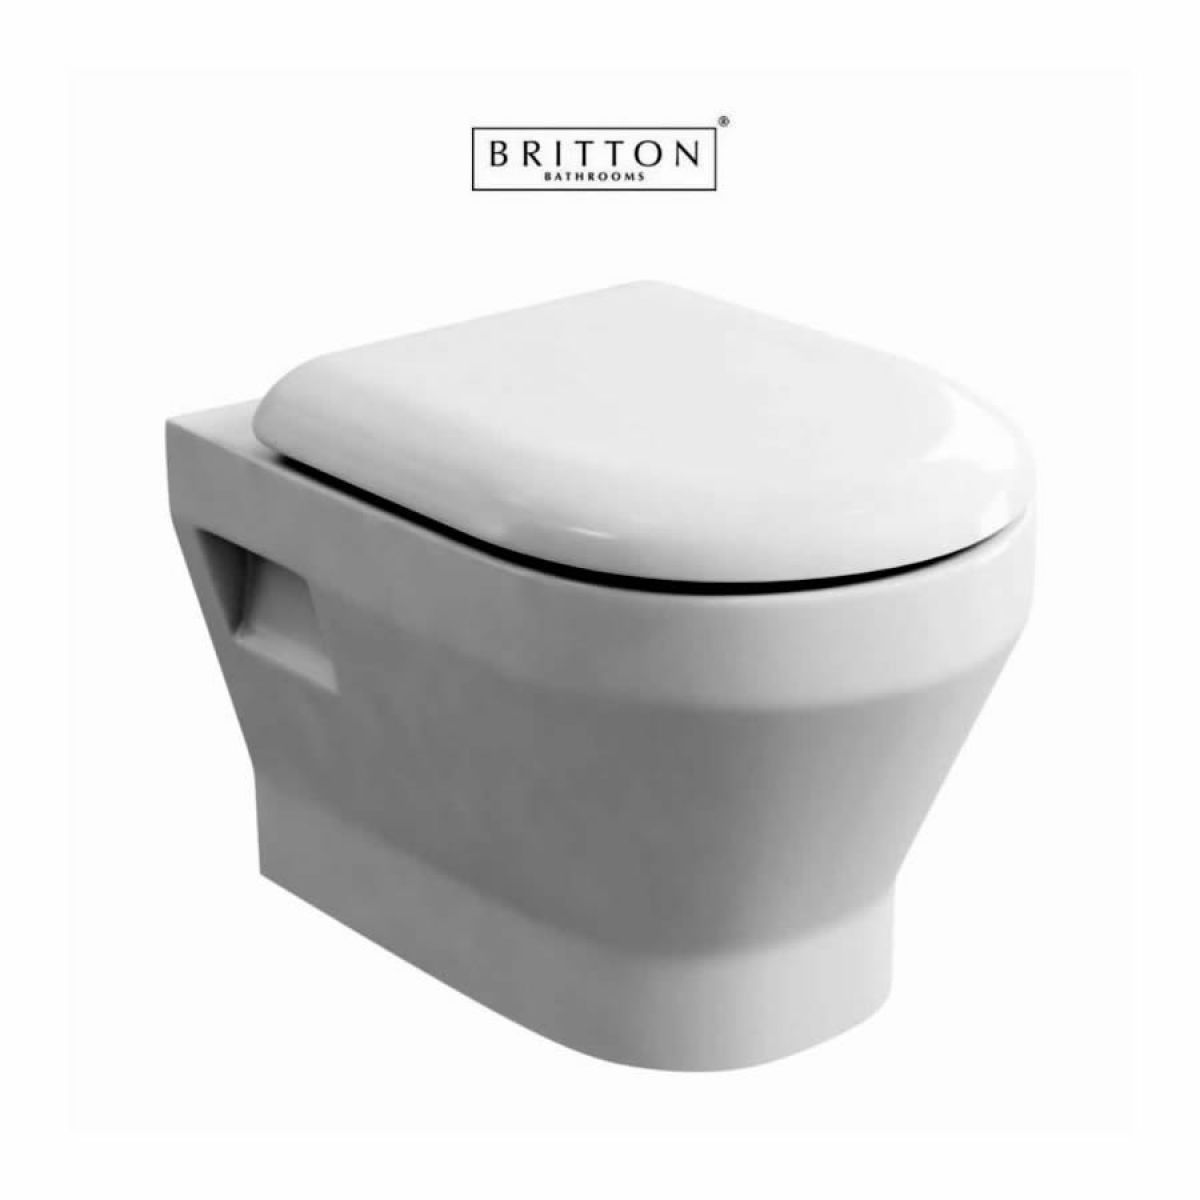 britton curve s30 wall hung toilet - Wall Hung Toilet